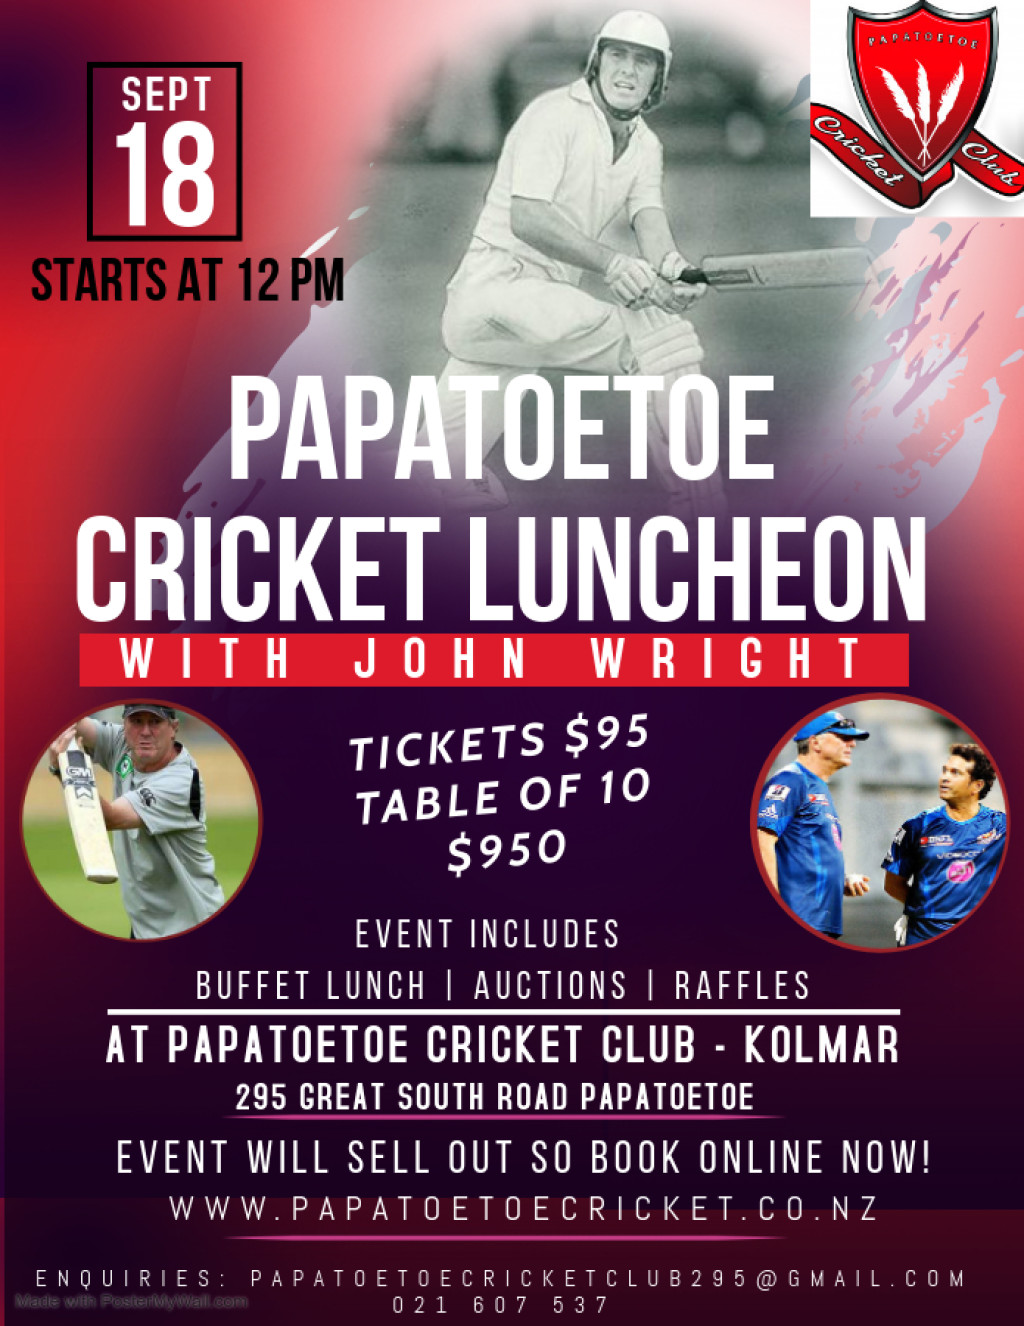 Online Registrations OPEN tomorrow and book your tickets NOW for the Cricket Luncheon with John Wright